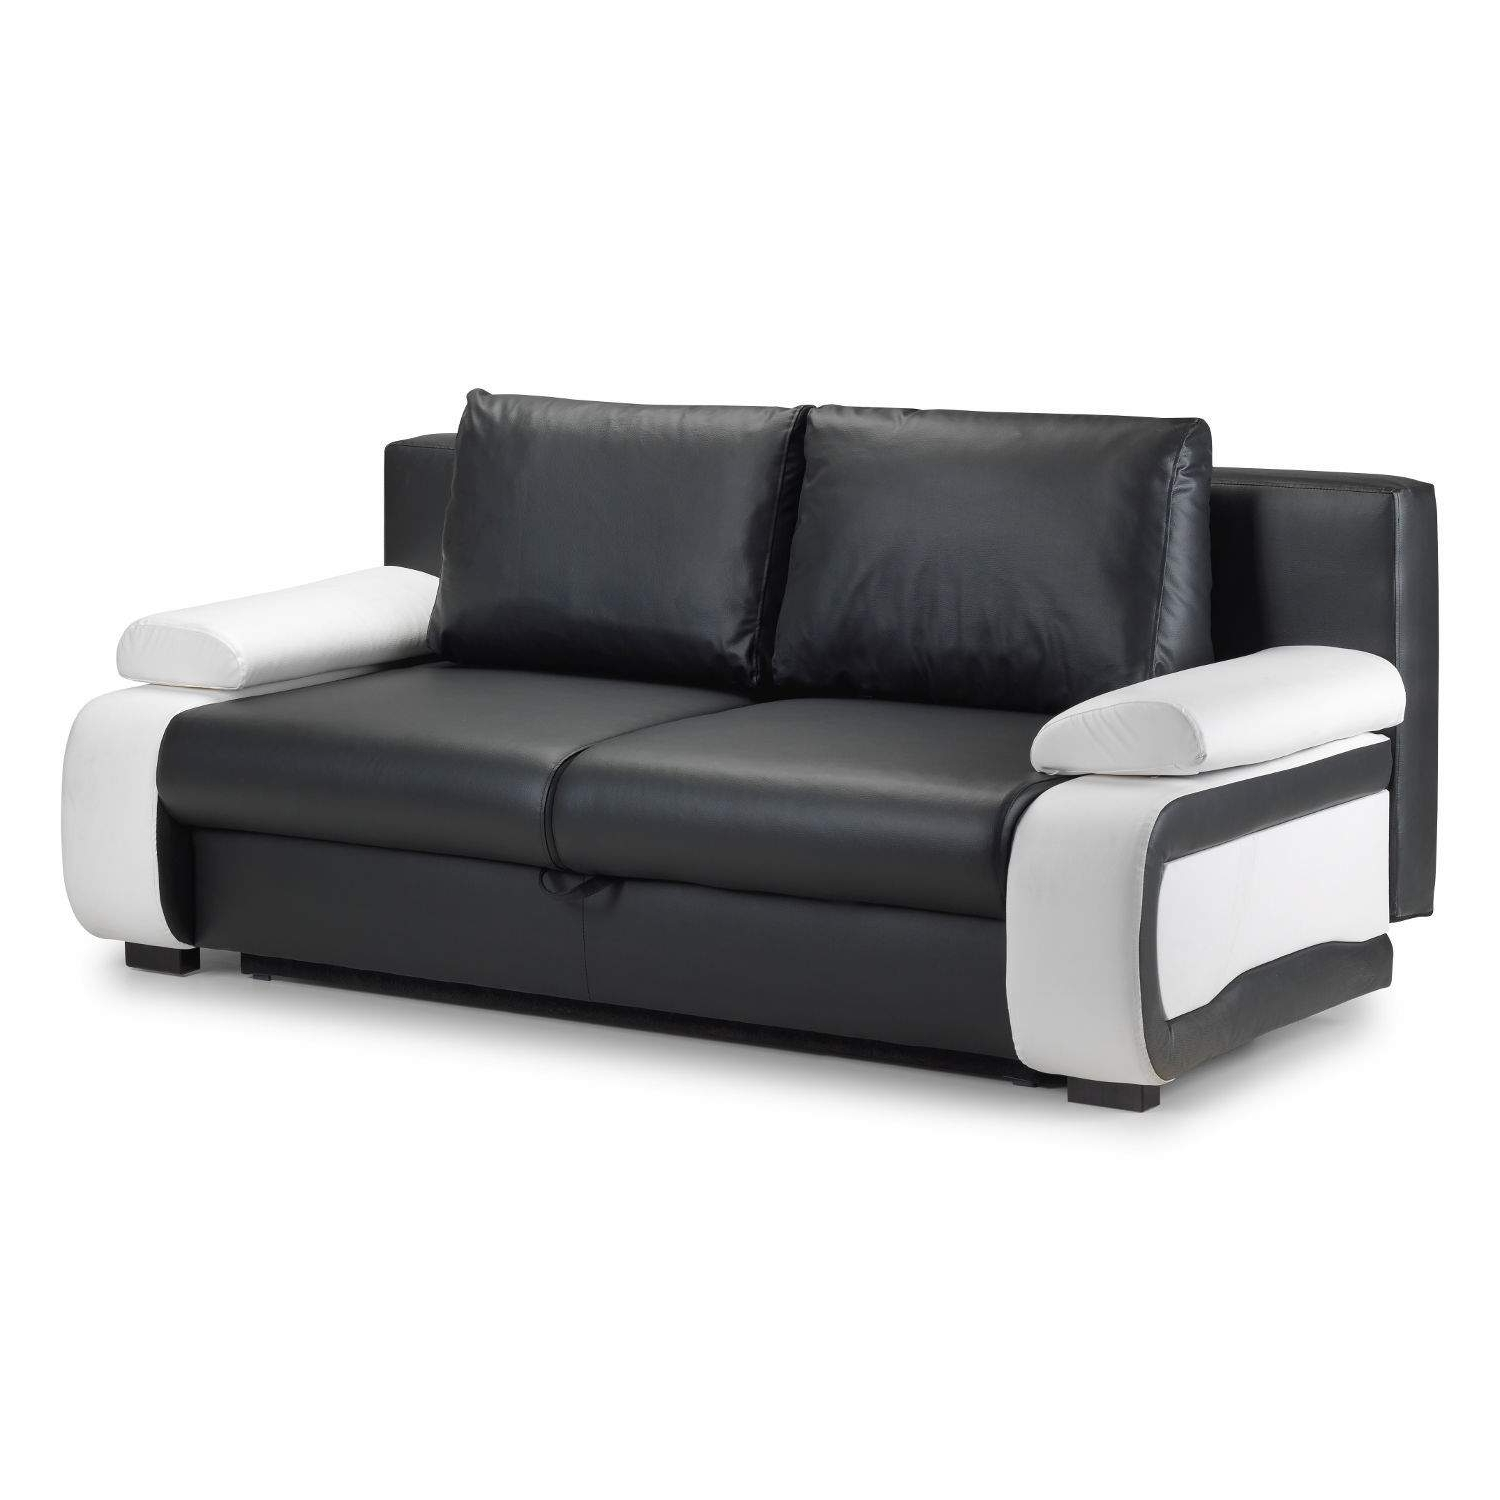 Victoria 2 Seater Sofa Bed – Next Day Delivery Victoria 2 Seater Within Popular Black 2 Seater Sofas (Gallery 14 of 15)